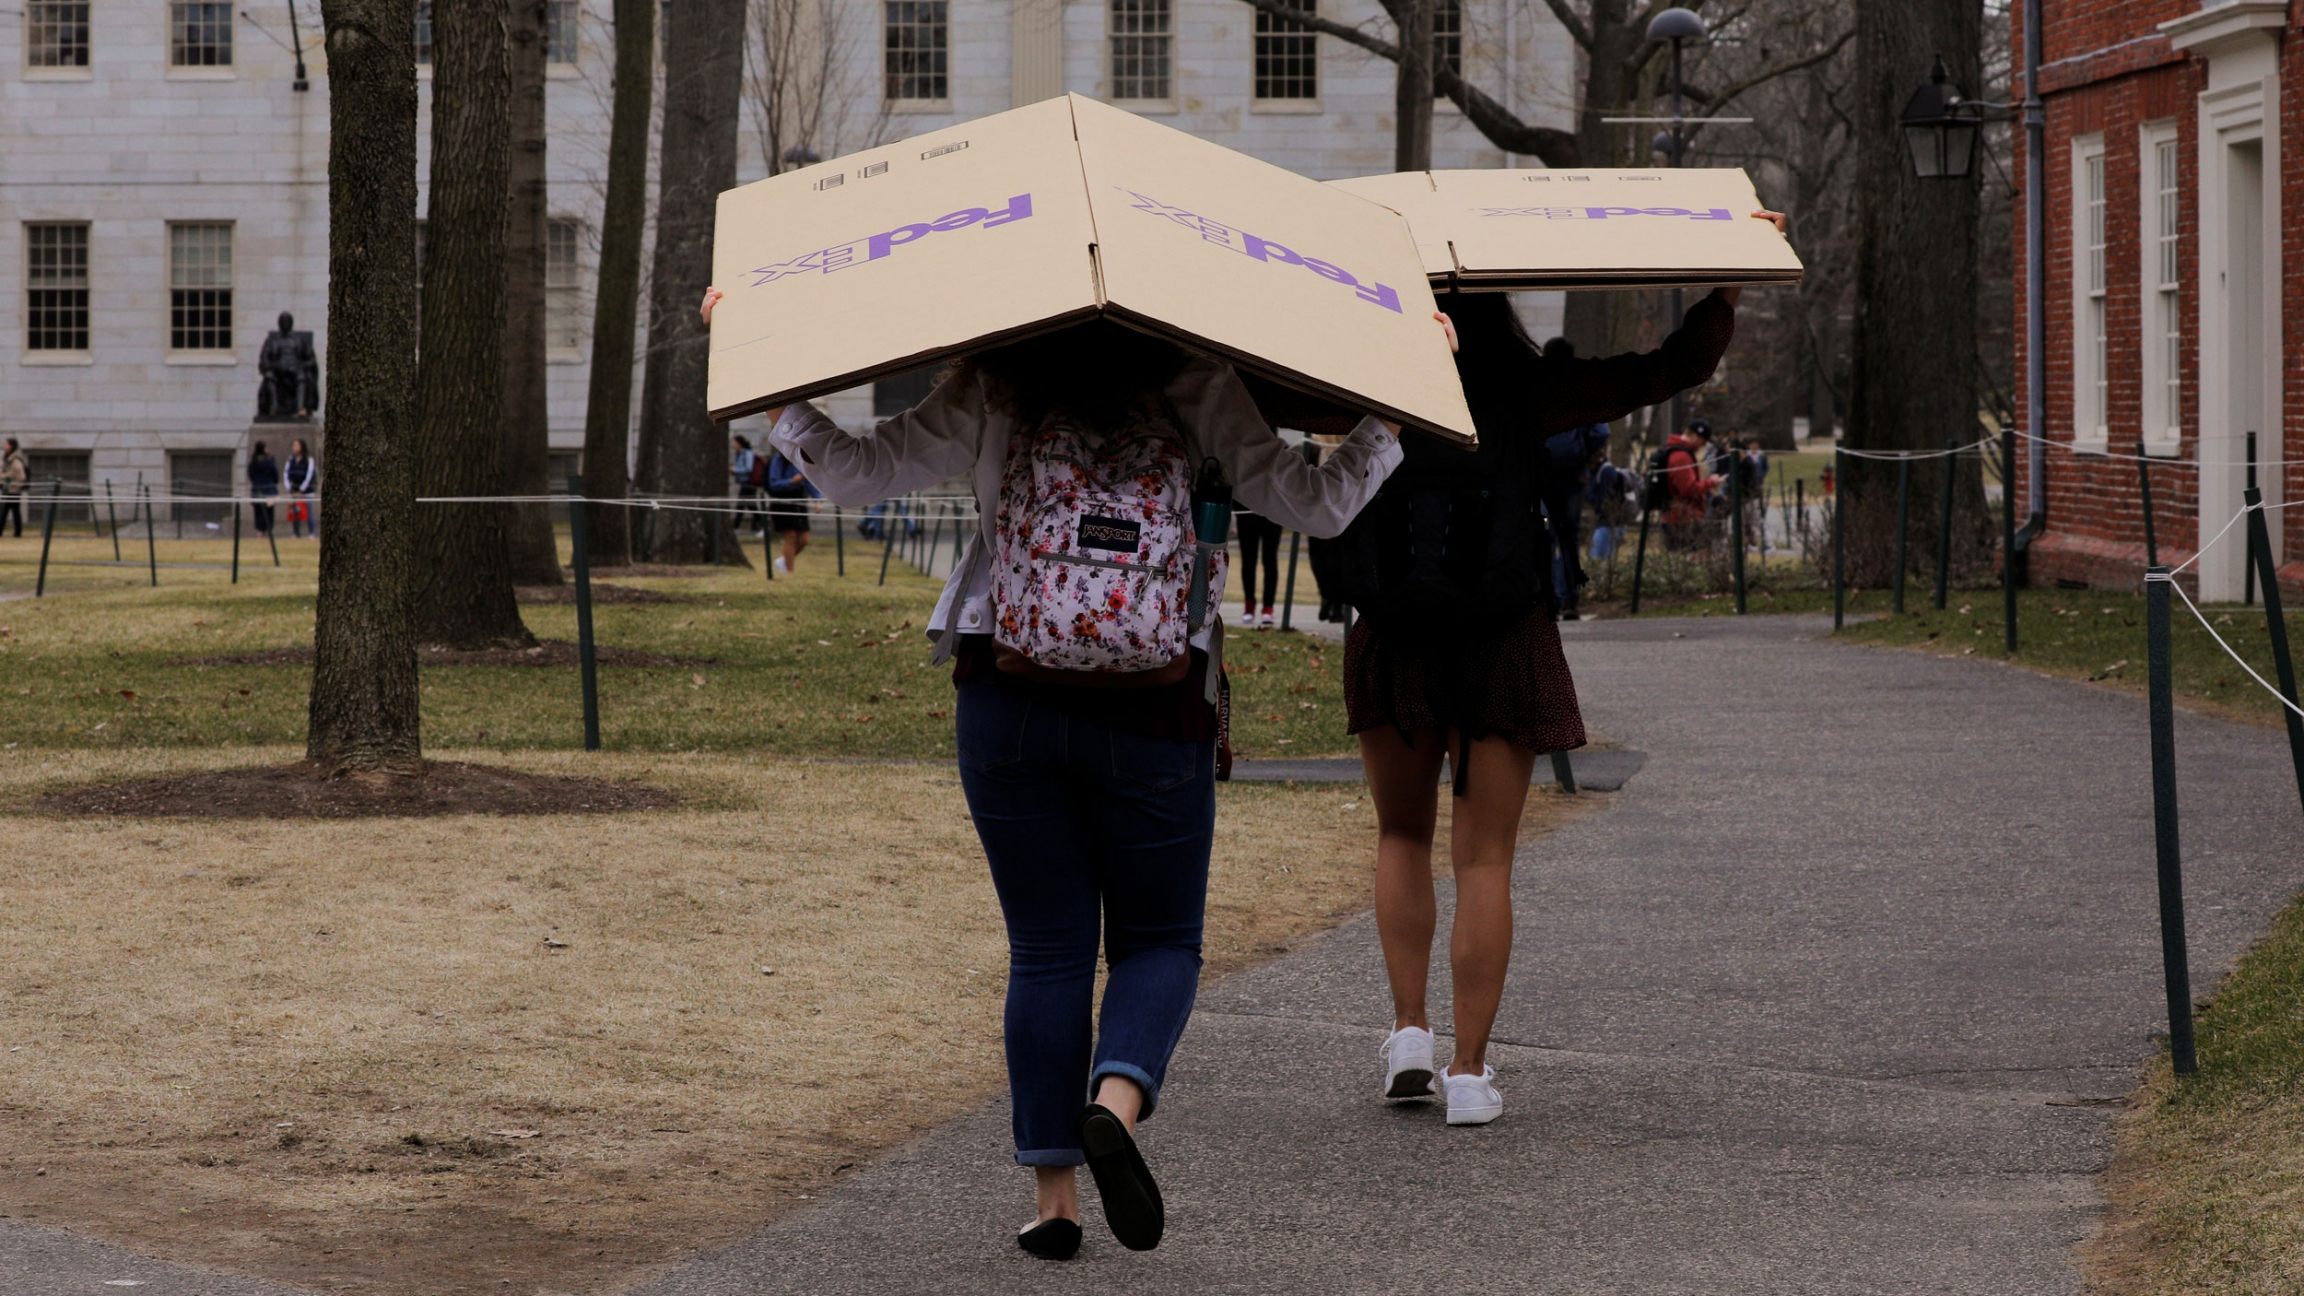 Two women are shown carrying cardboard FedEx boxes over their heads as they walk through Harvard University's campus.